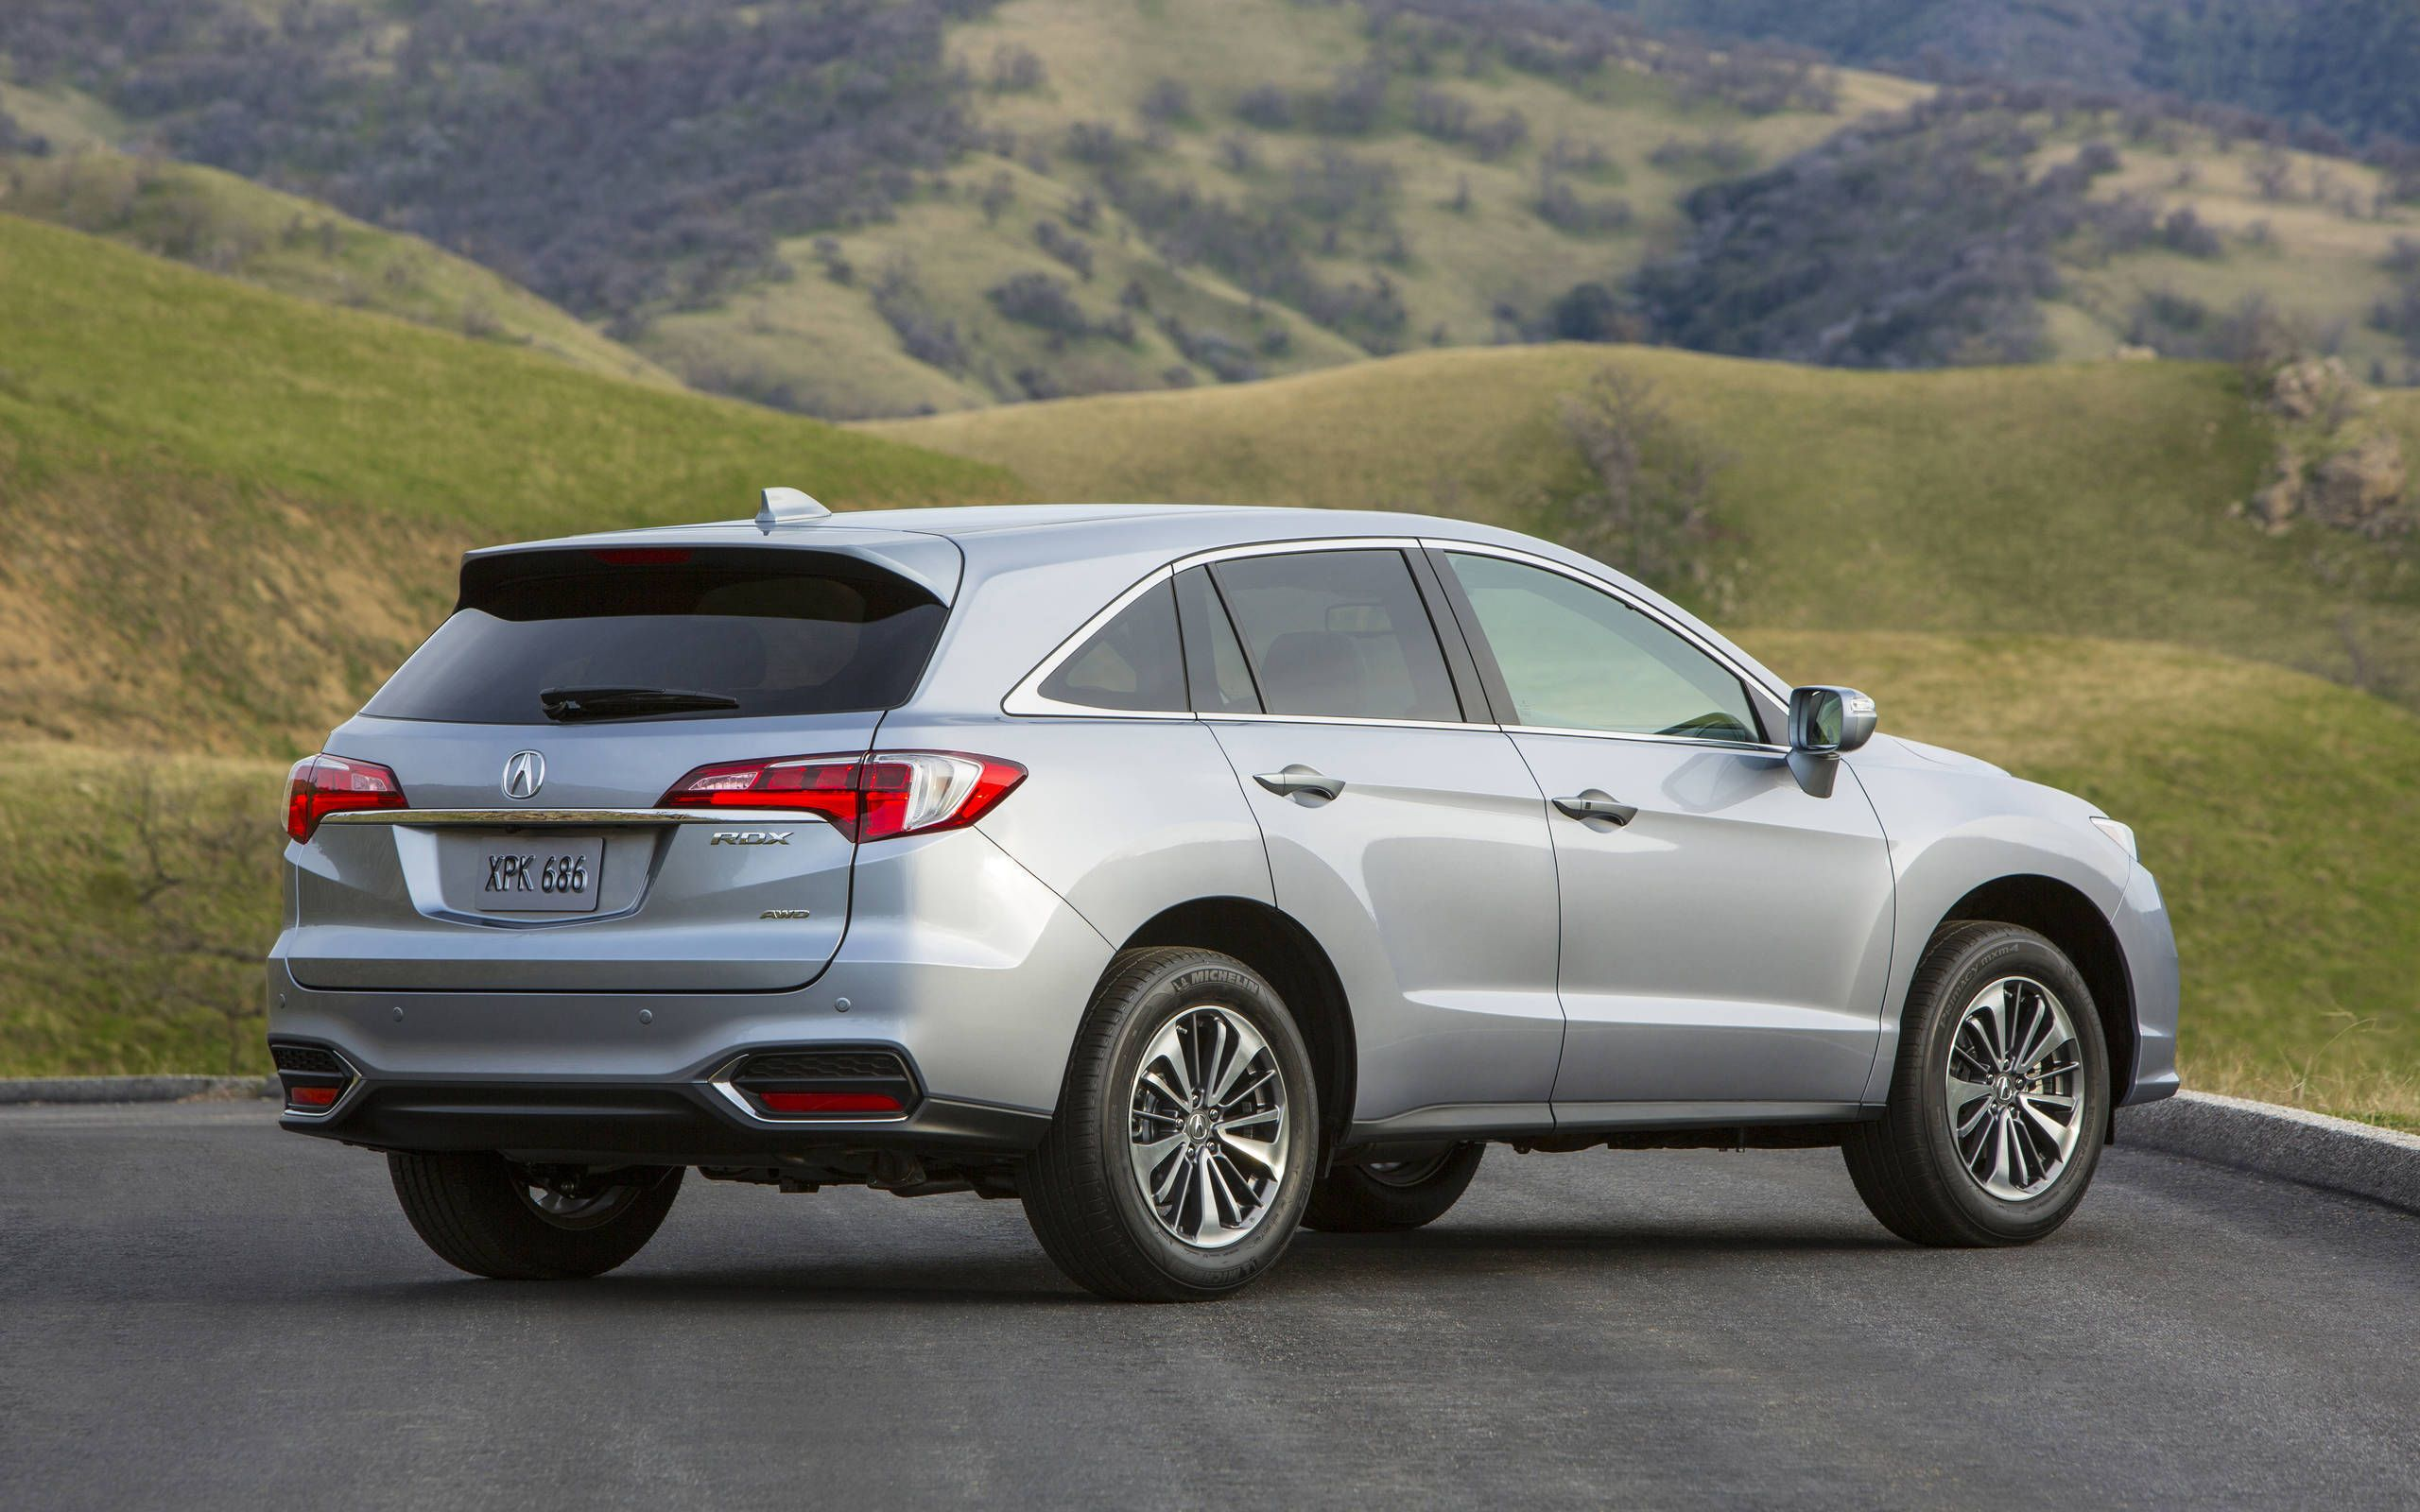 2017 Acura Rdx Awd Review Comfortable And Handsome But Not Quite Premium